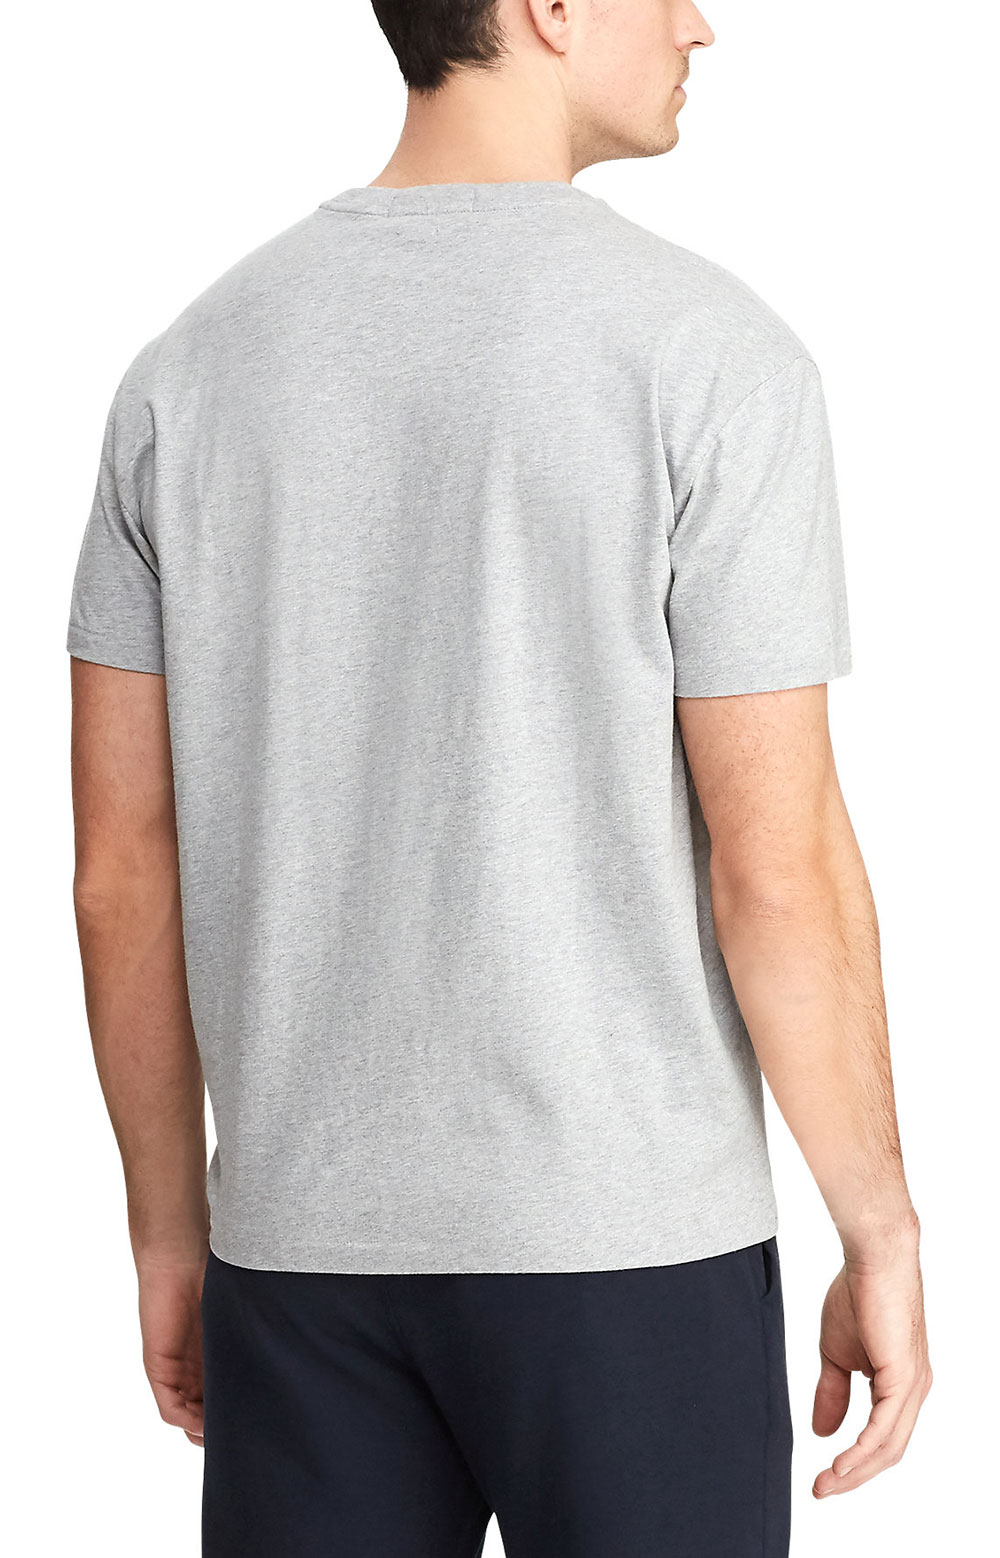 Classic Fit Polo Sport T-Shirt - Andover Heather  3